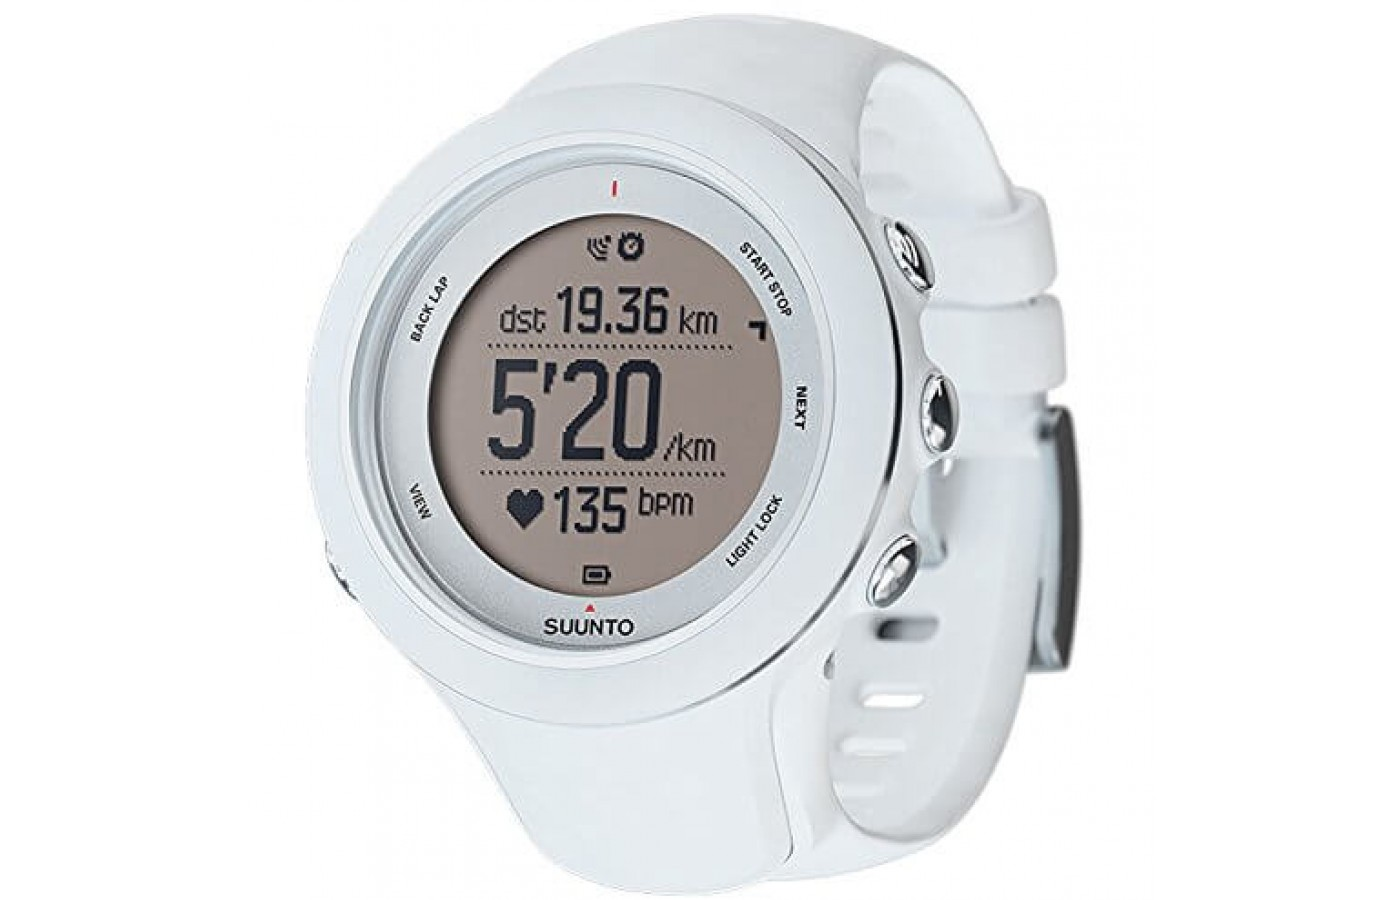 The Suunto Ambit3 Sport charges via USB